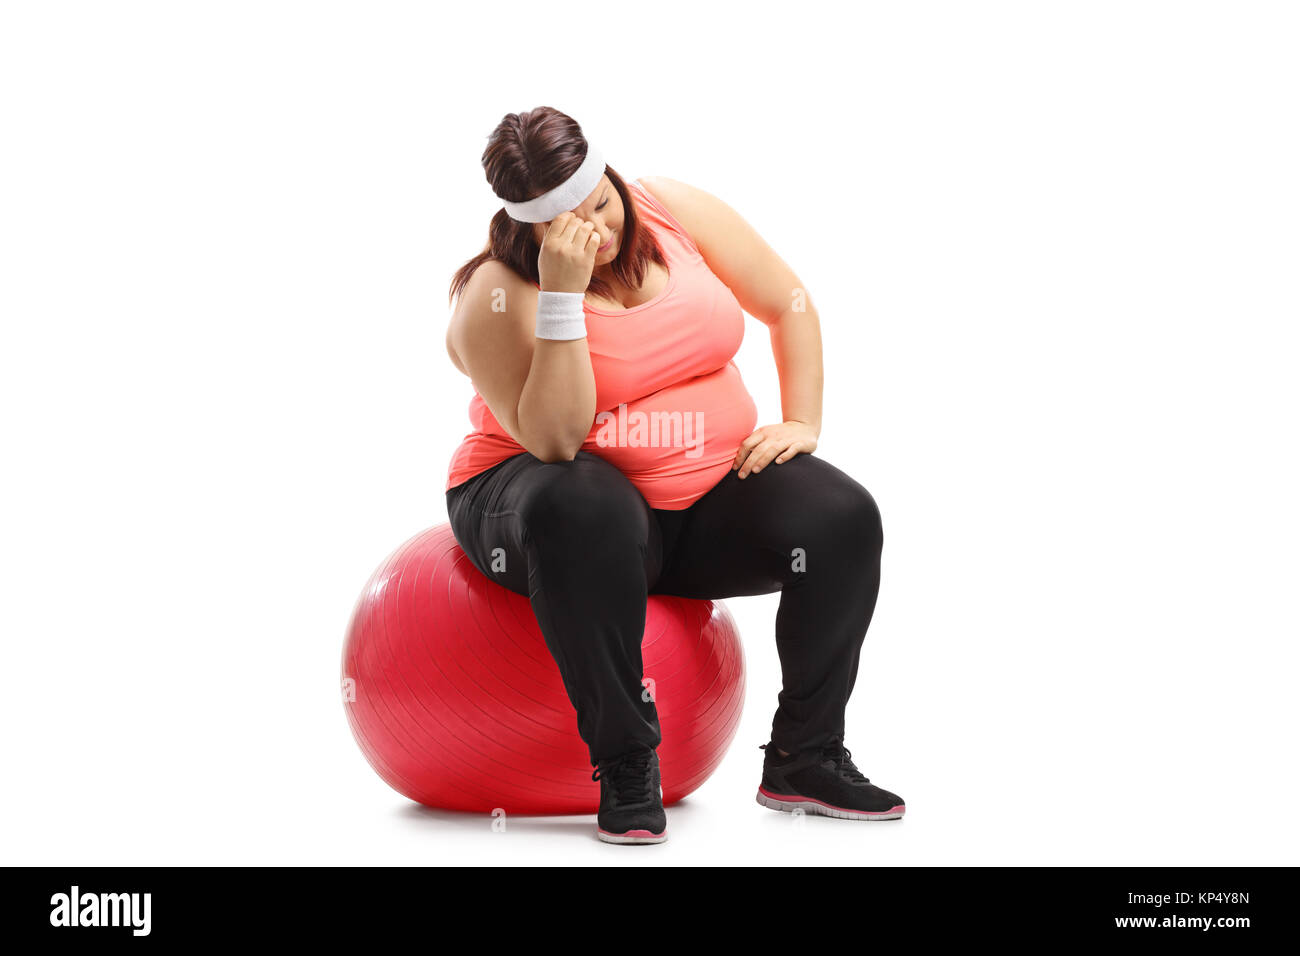 Sad overweight woman sitting on an exercise ball isolated on white background Stock Photo